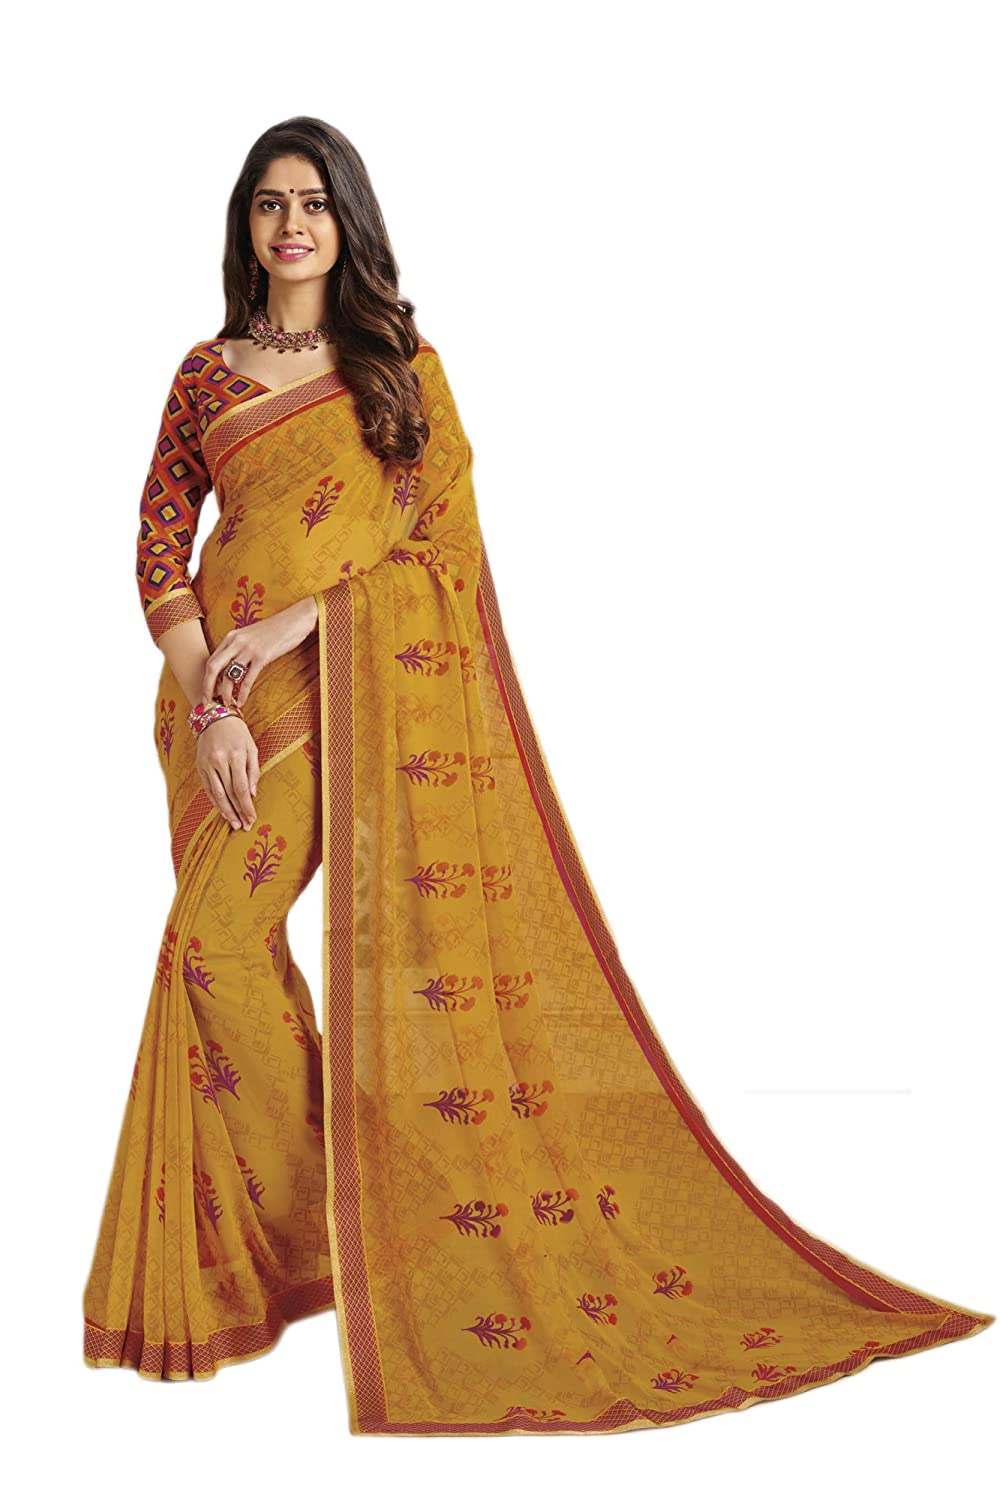 2207998faa Ankit Fashions Women's Printed with Lace Border Georgette Saree in Mustard  Yellow: Amazon.in: Clothing & Accessories